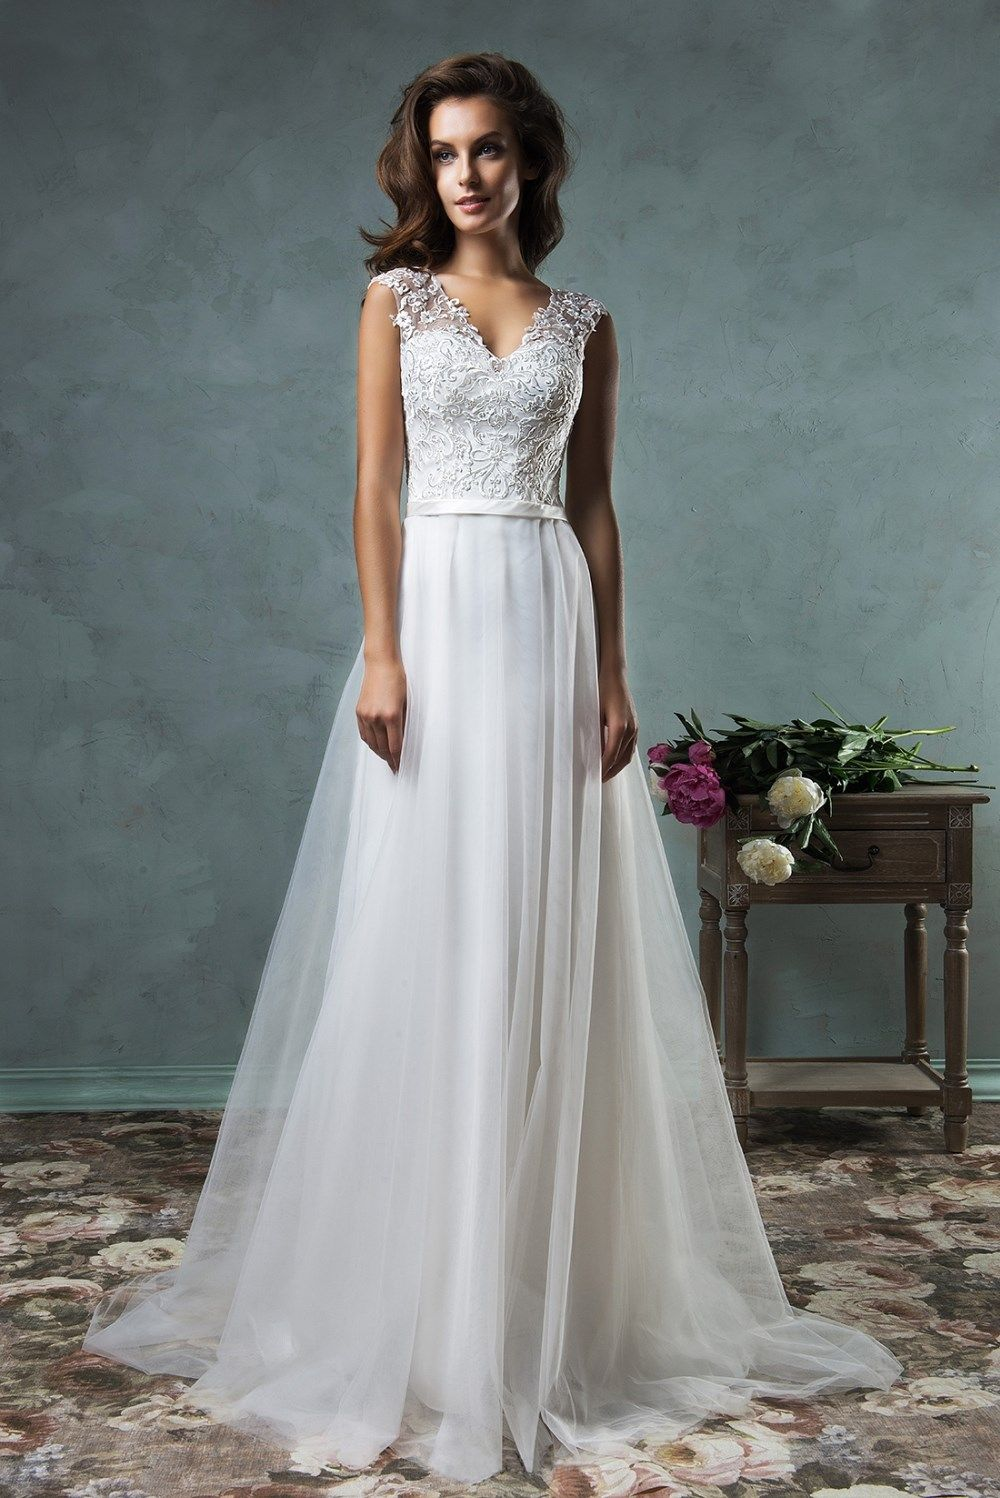 Beach Crystal Lace Applique Simple Wedding Dress (With